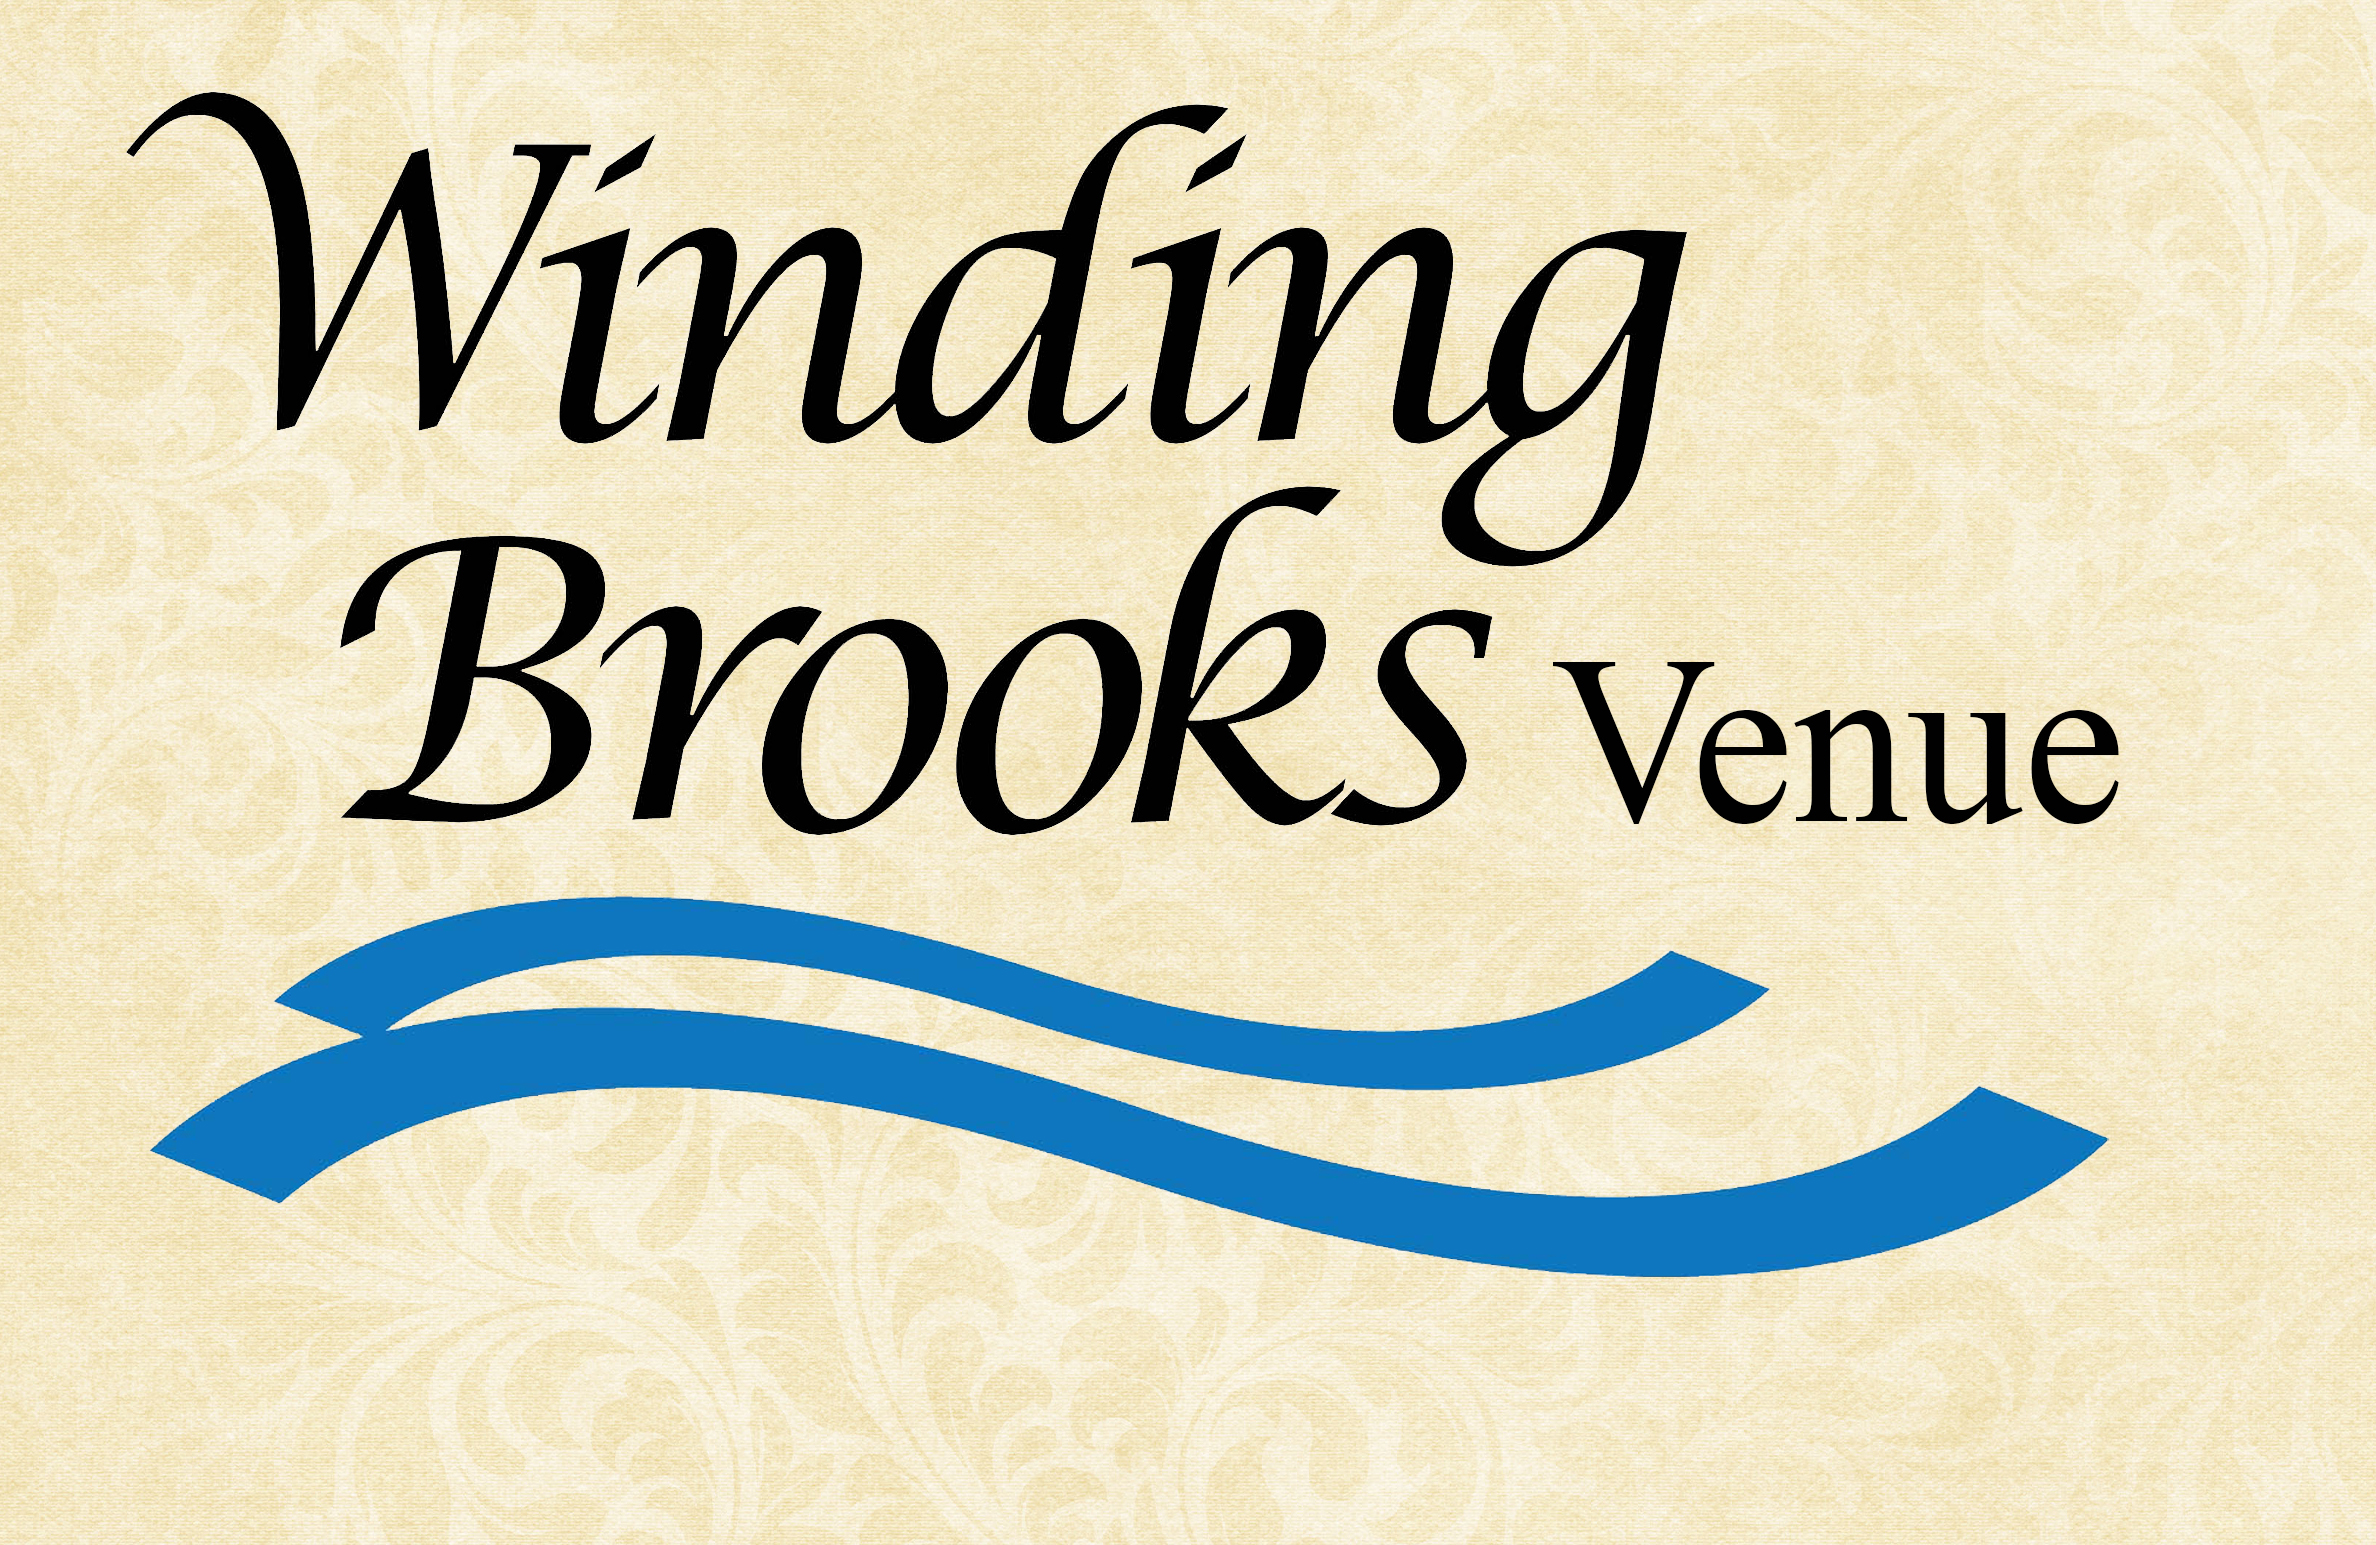 Winding Brooks